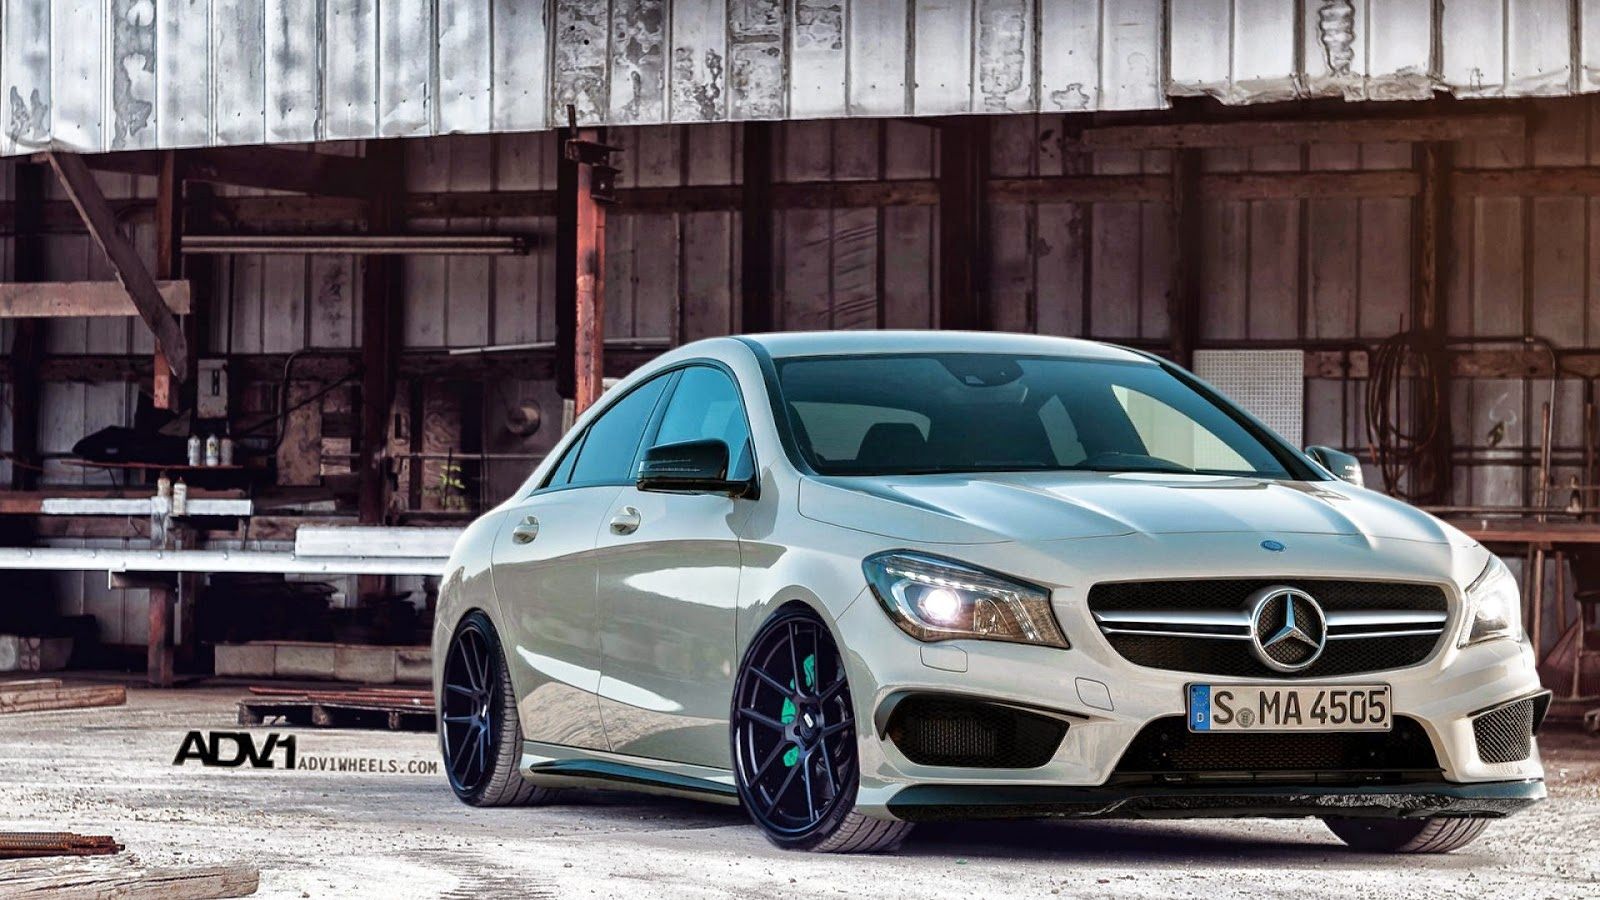 Wallpapers hd mercedes benz benztuning for Mercedes benz tuning